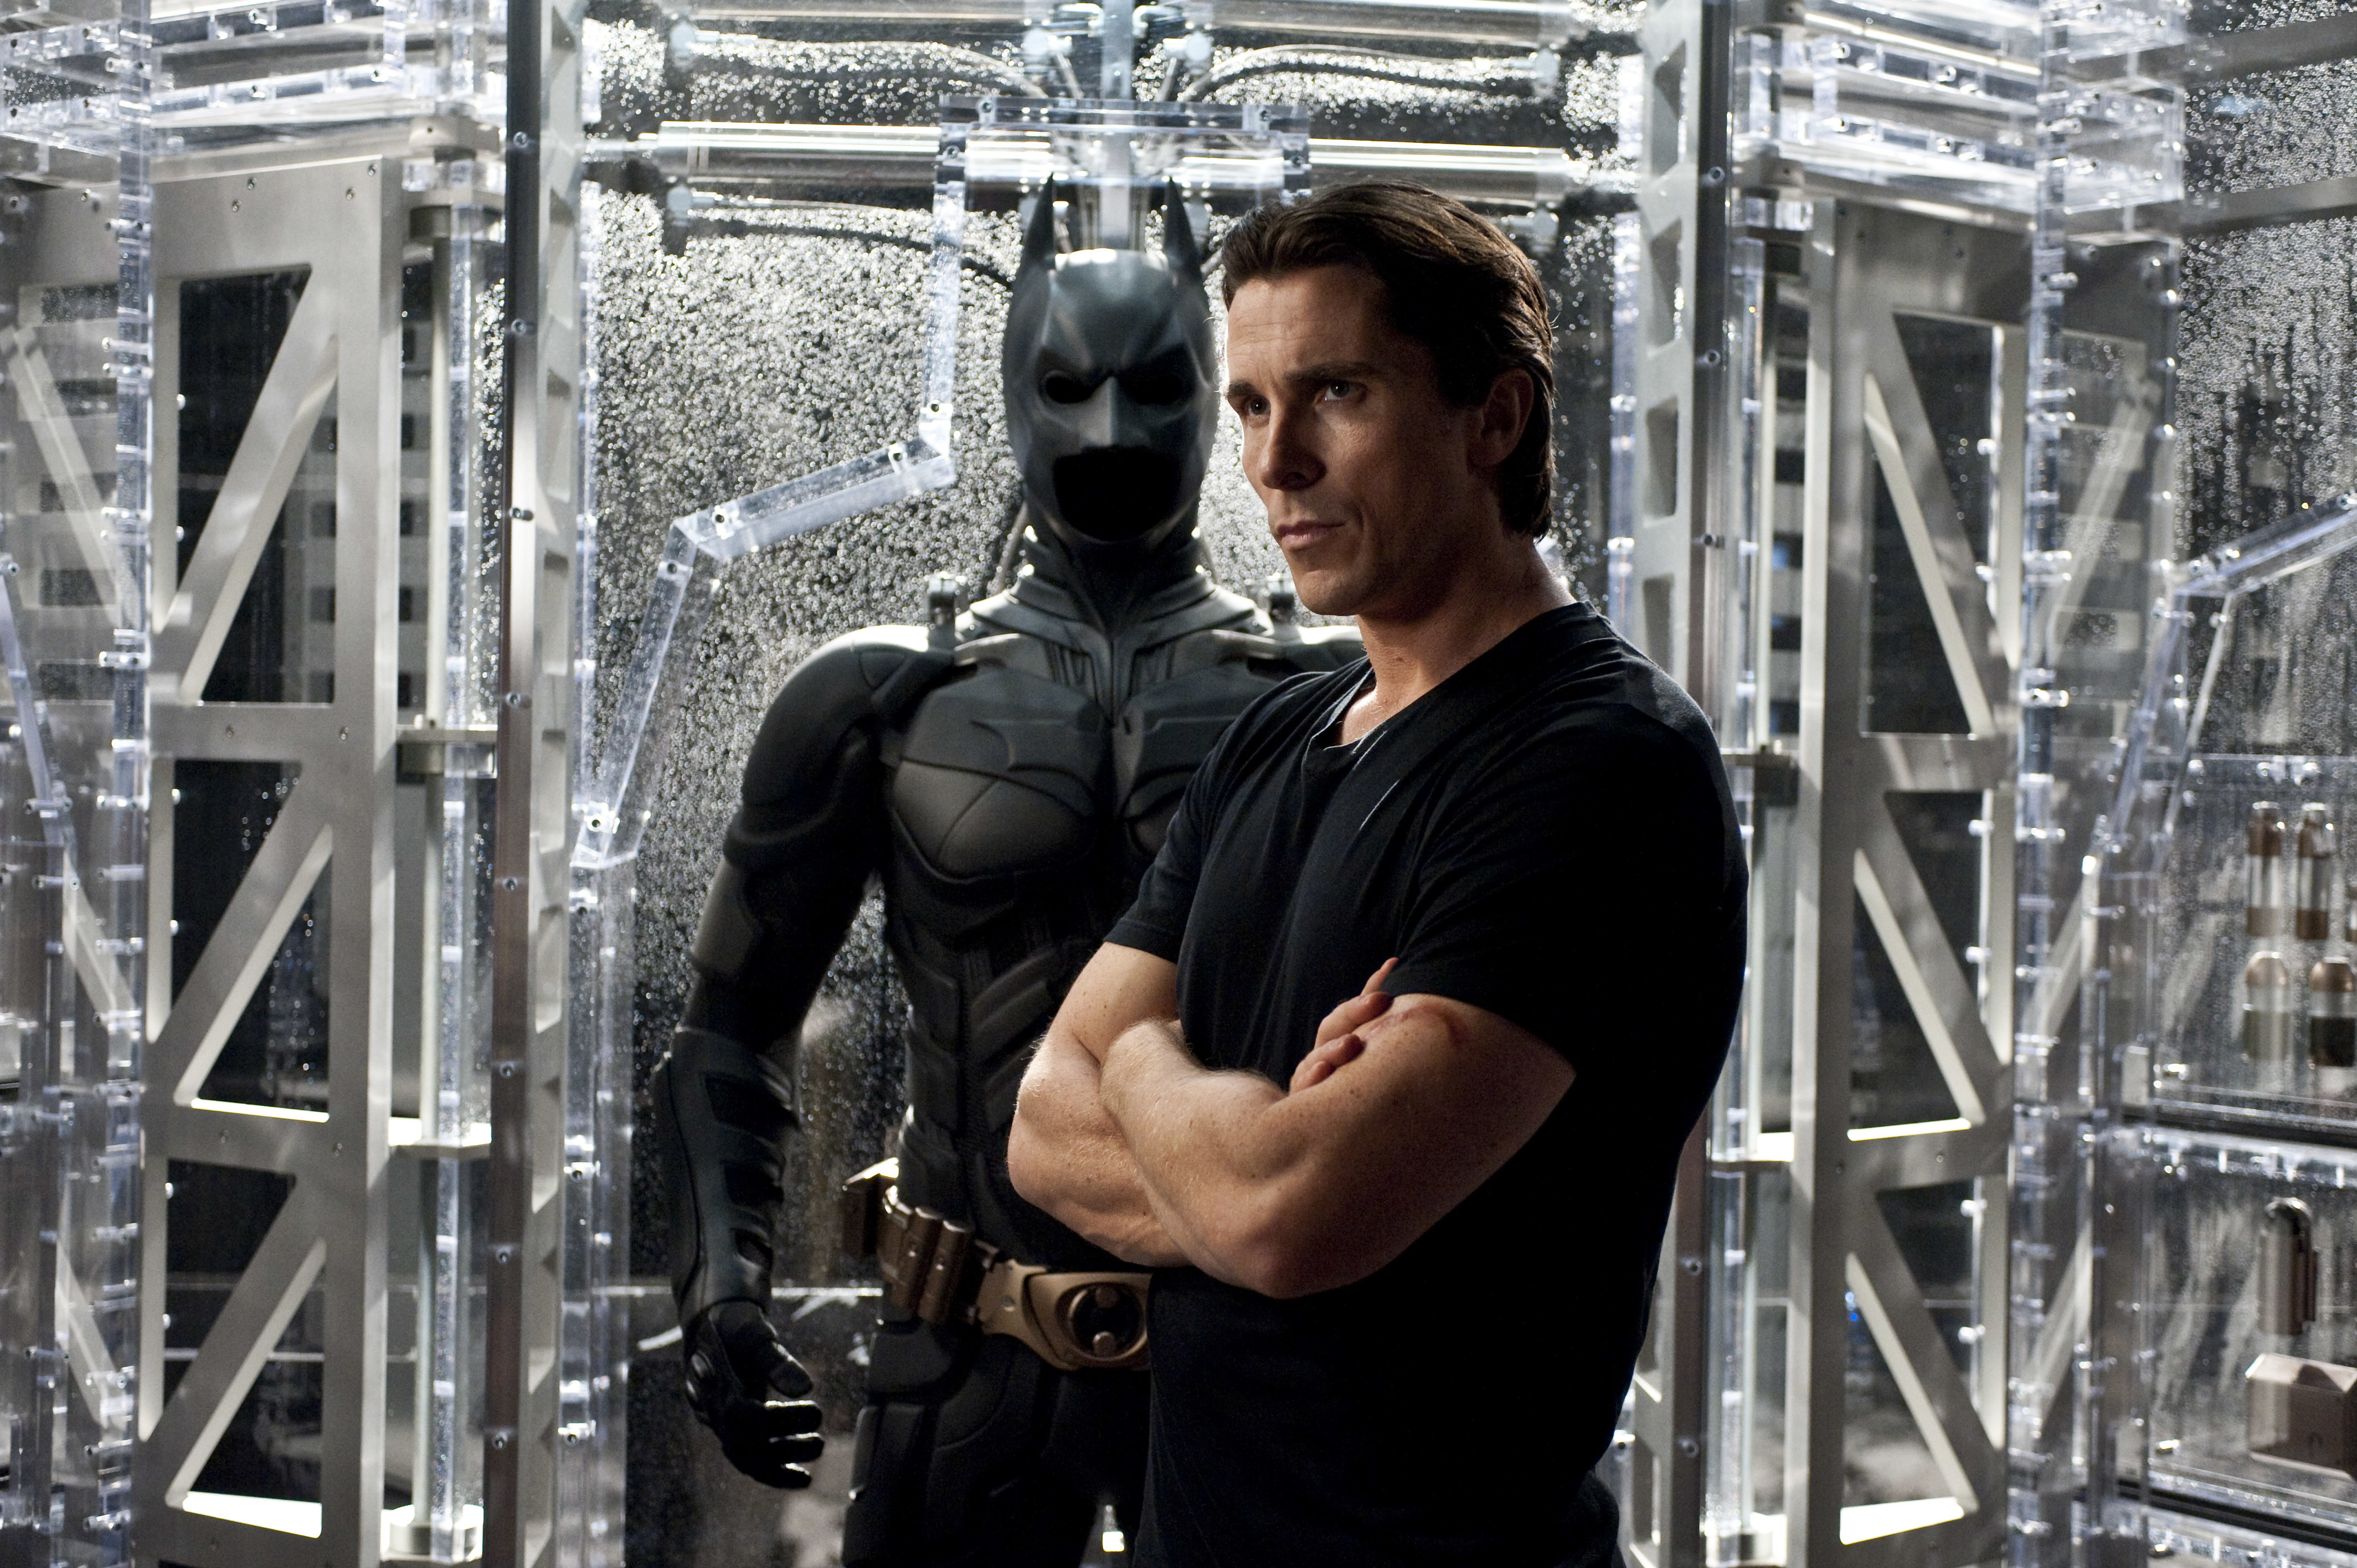 4256x2832 - Christian Bale Wallpapers 19